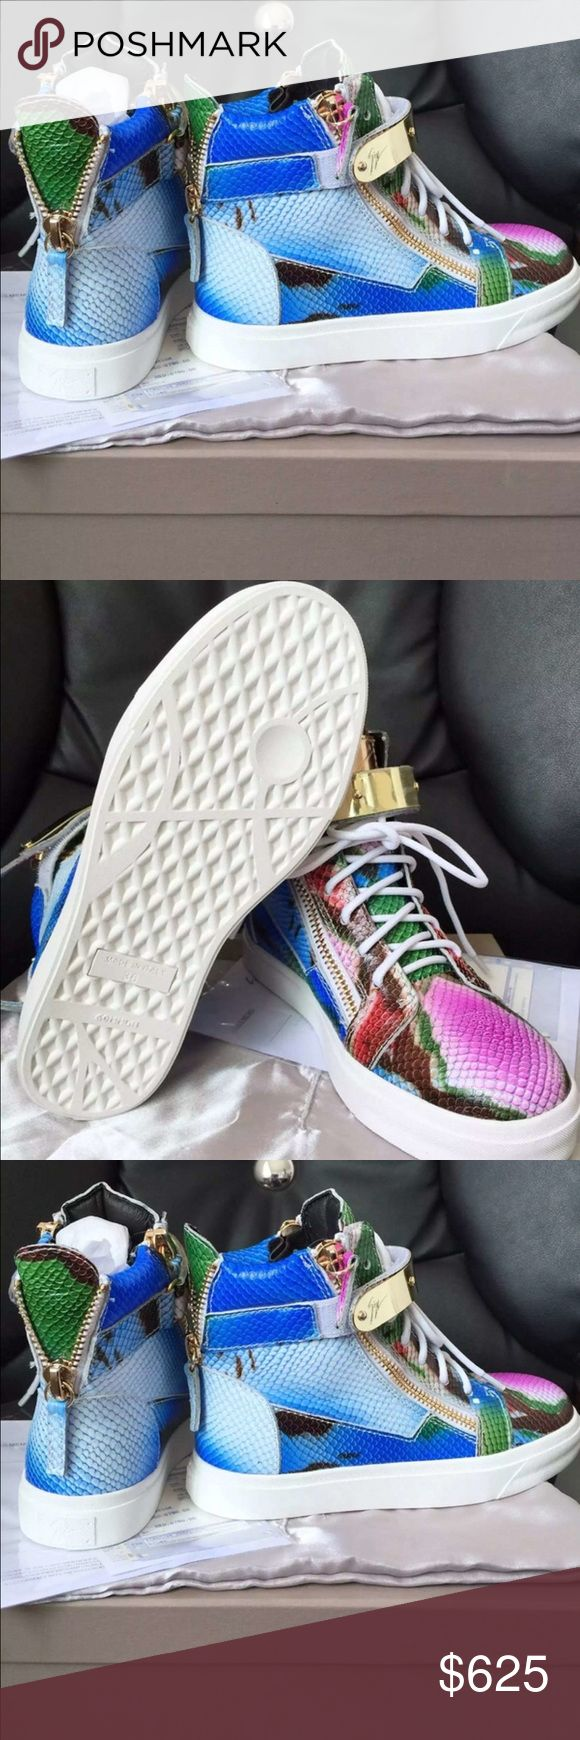 Authentic Giuseppe Zanotti Men Shoes(with receipt. Giuseppe Zanotti Men Shoes(with receipt) hottest shoe I have in stock right now Giuseppe Zanotti Shoes Platforms